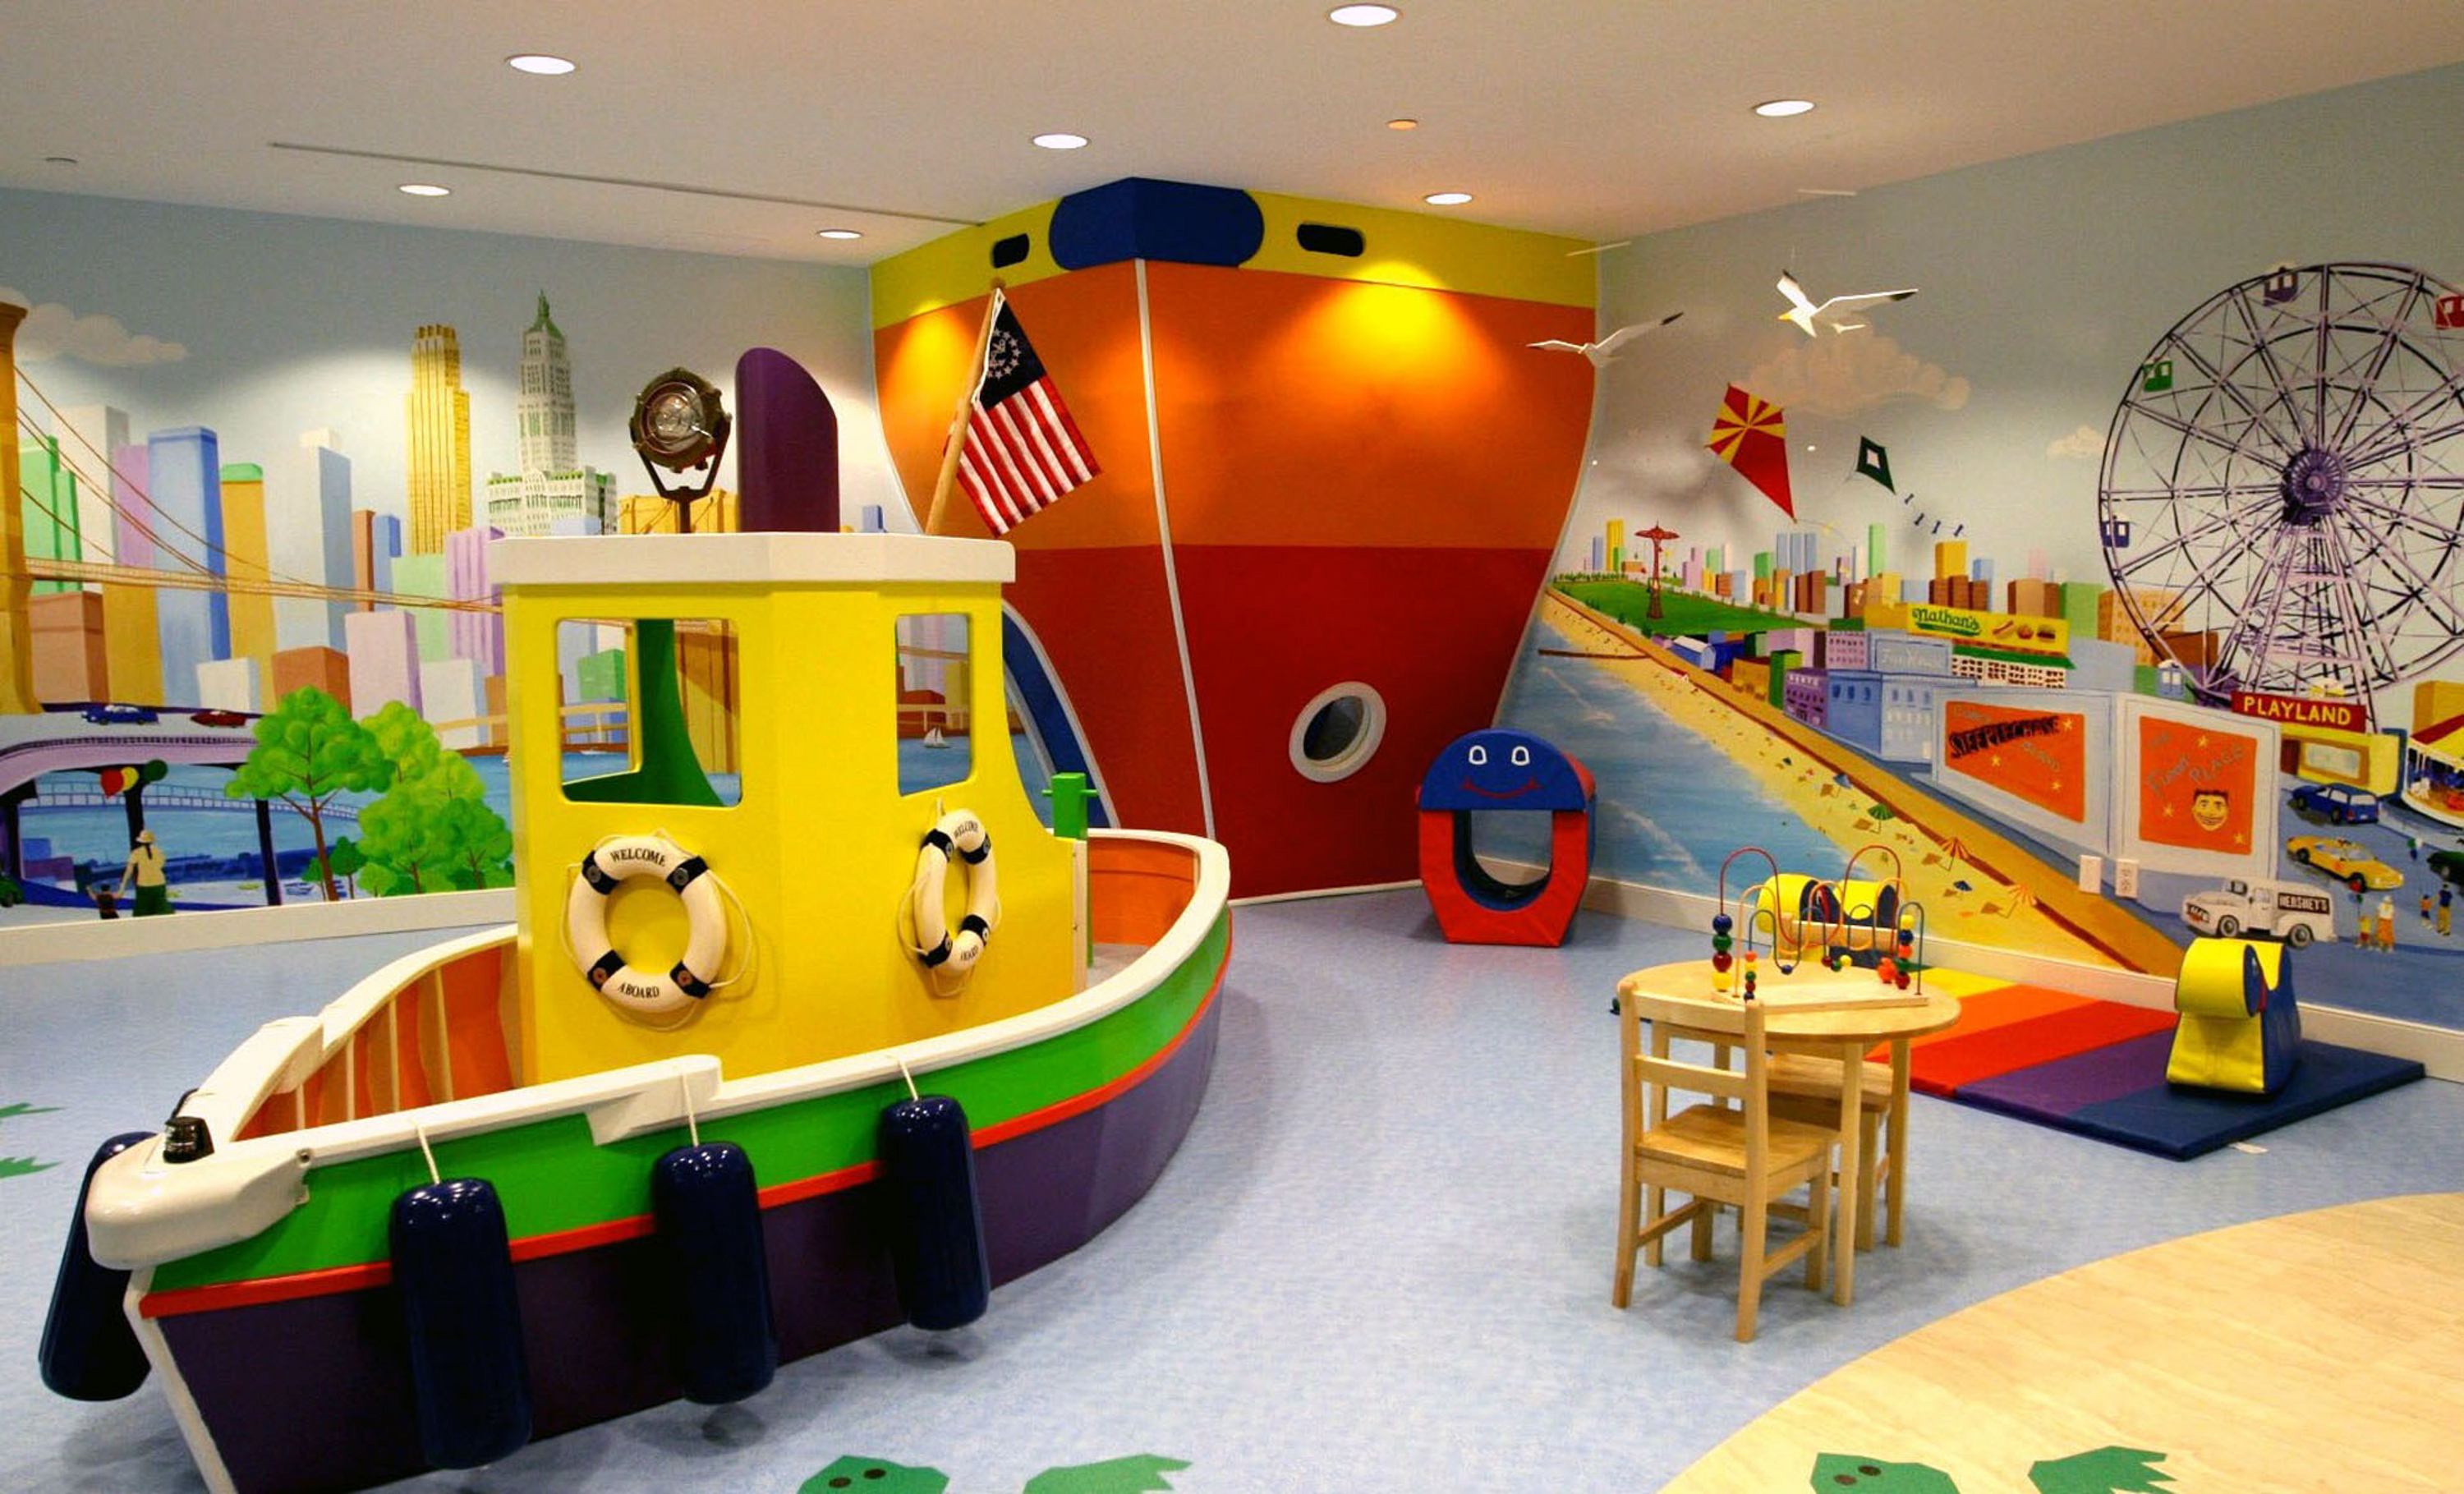 Kids playroom designs ideas for Design a house online for fun